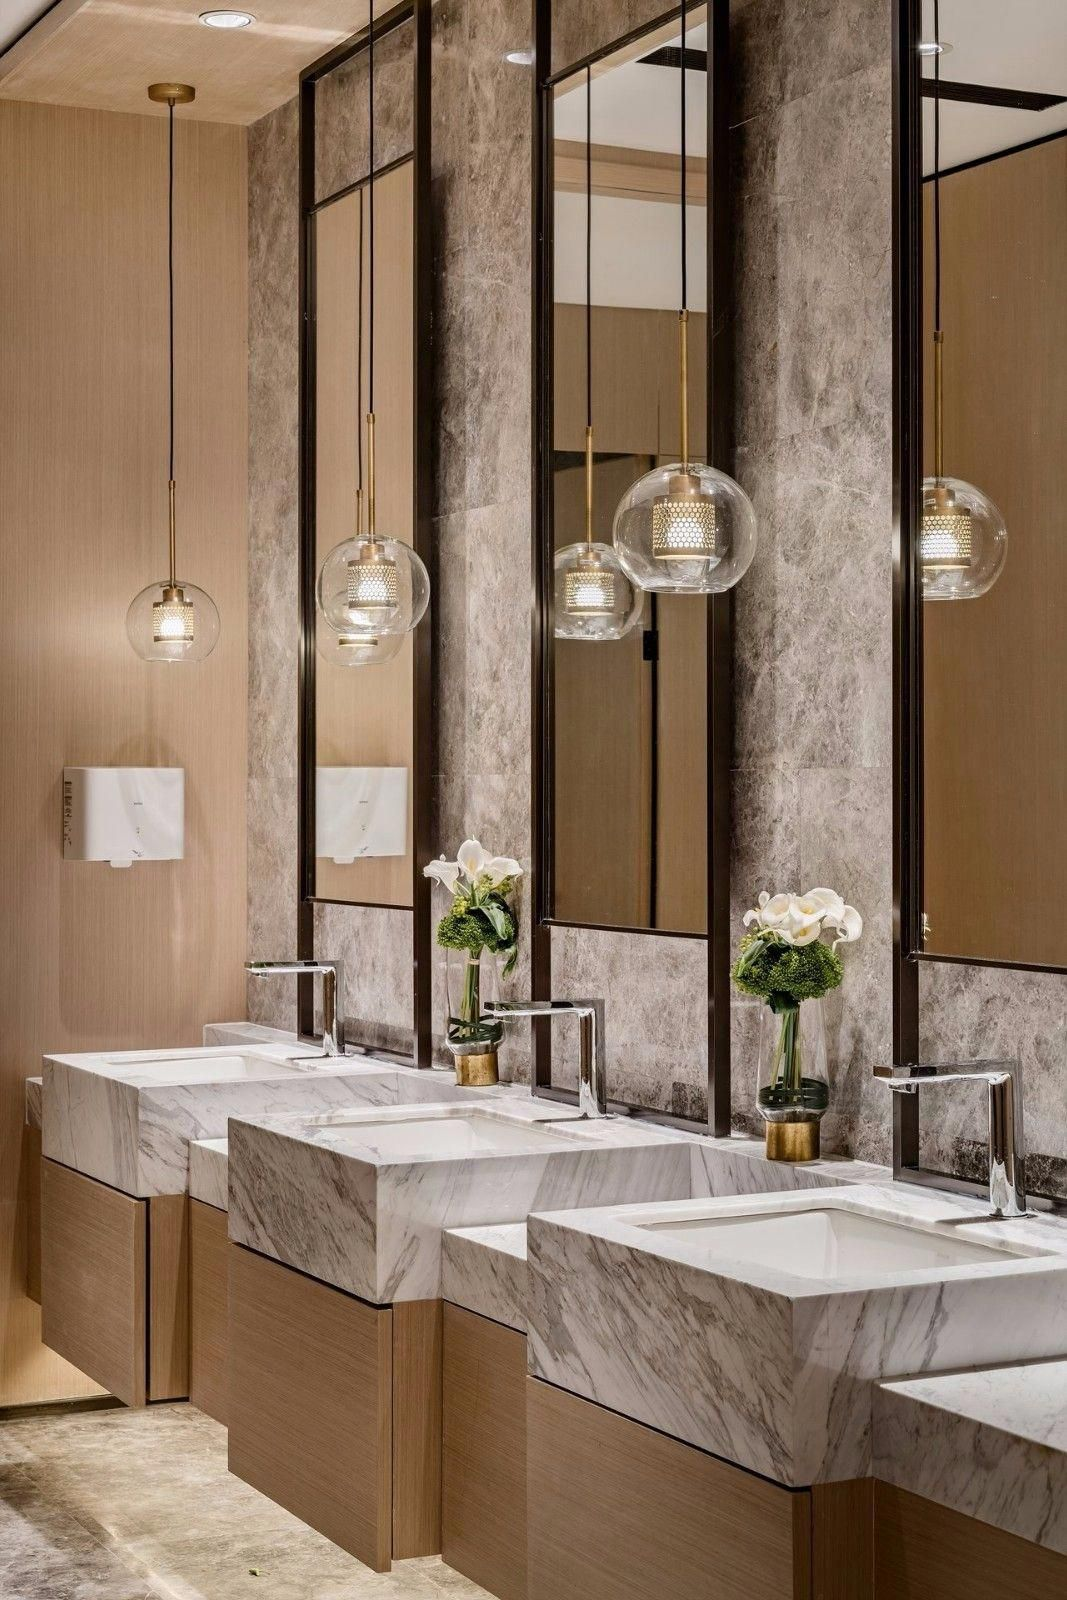 Traditional Bath Remodel Classic Look But Practical Want A Bath That Will Not Look Dated In Five Ye In 2020 Restroom Design Gorgeous Bathroom Bathroom Lighting